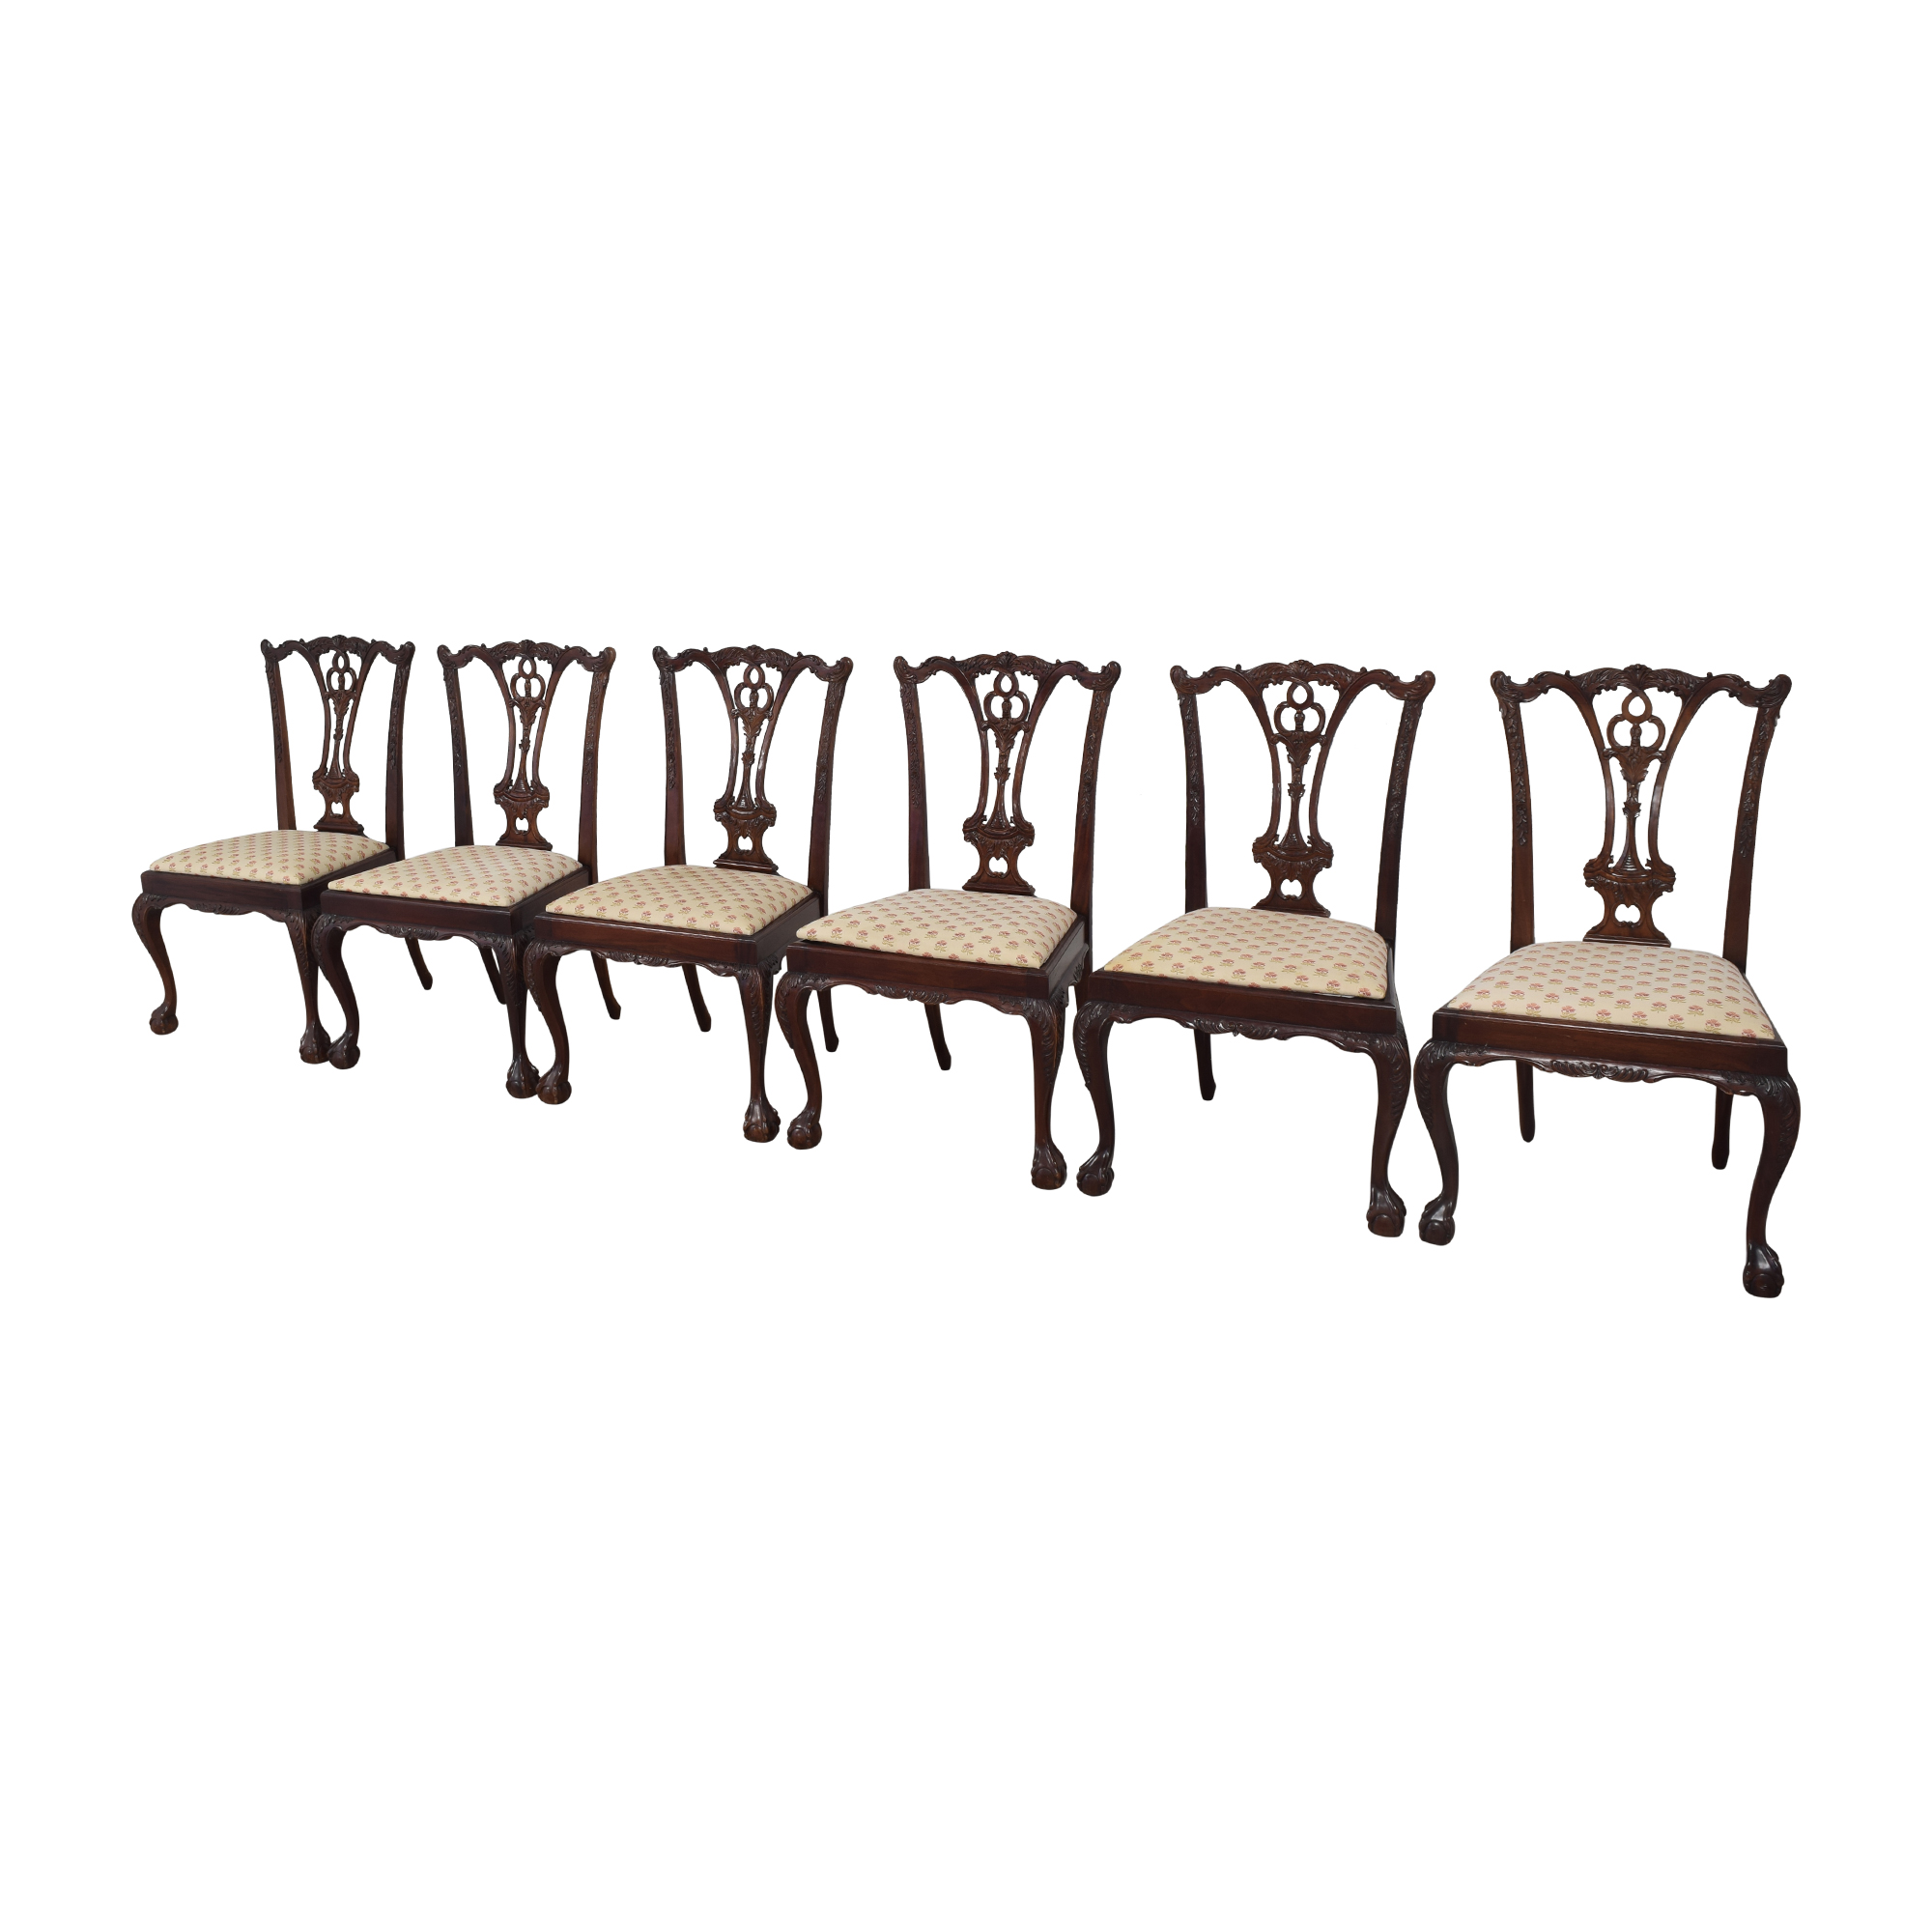 buy Paramount Antiques Paramount Antiques Chippendale Dining Side Chairs online